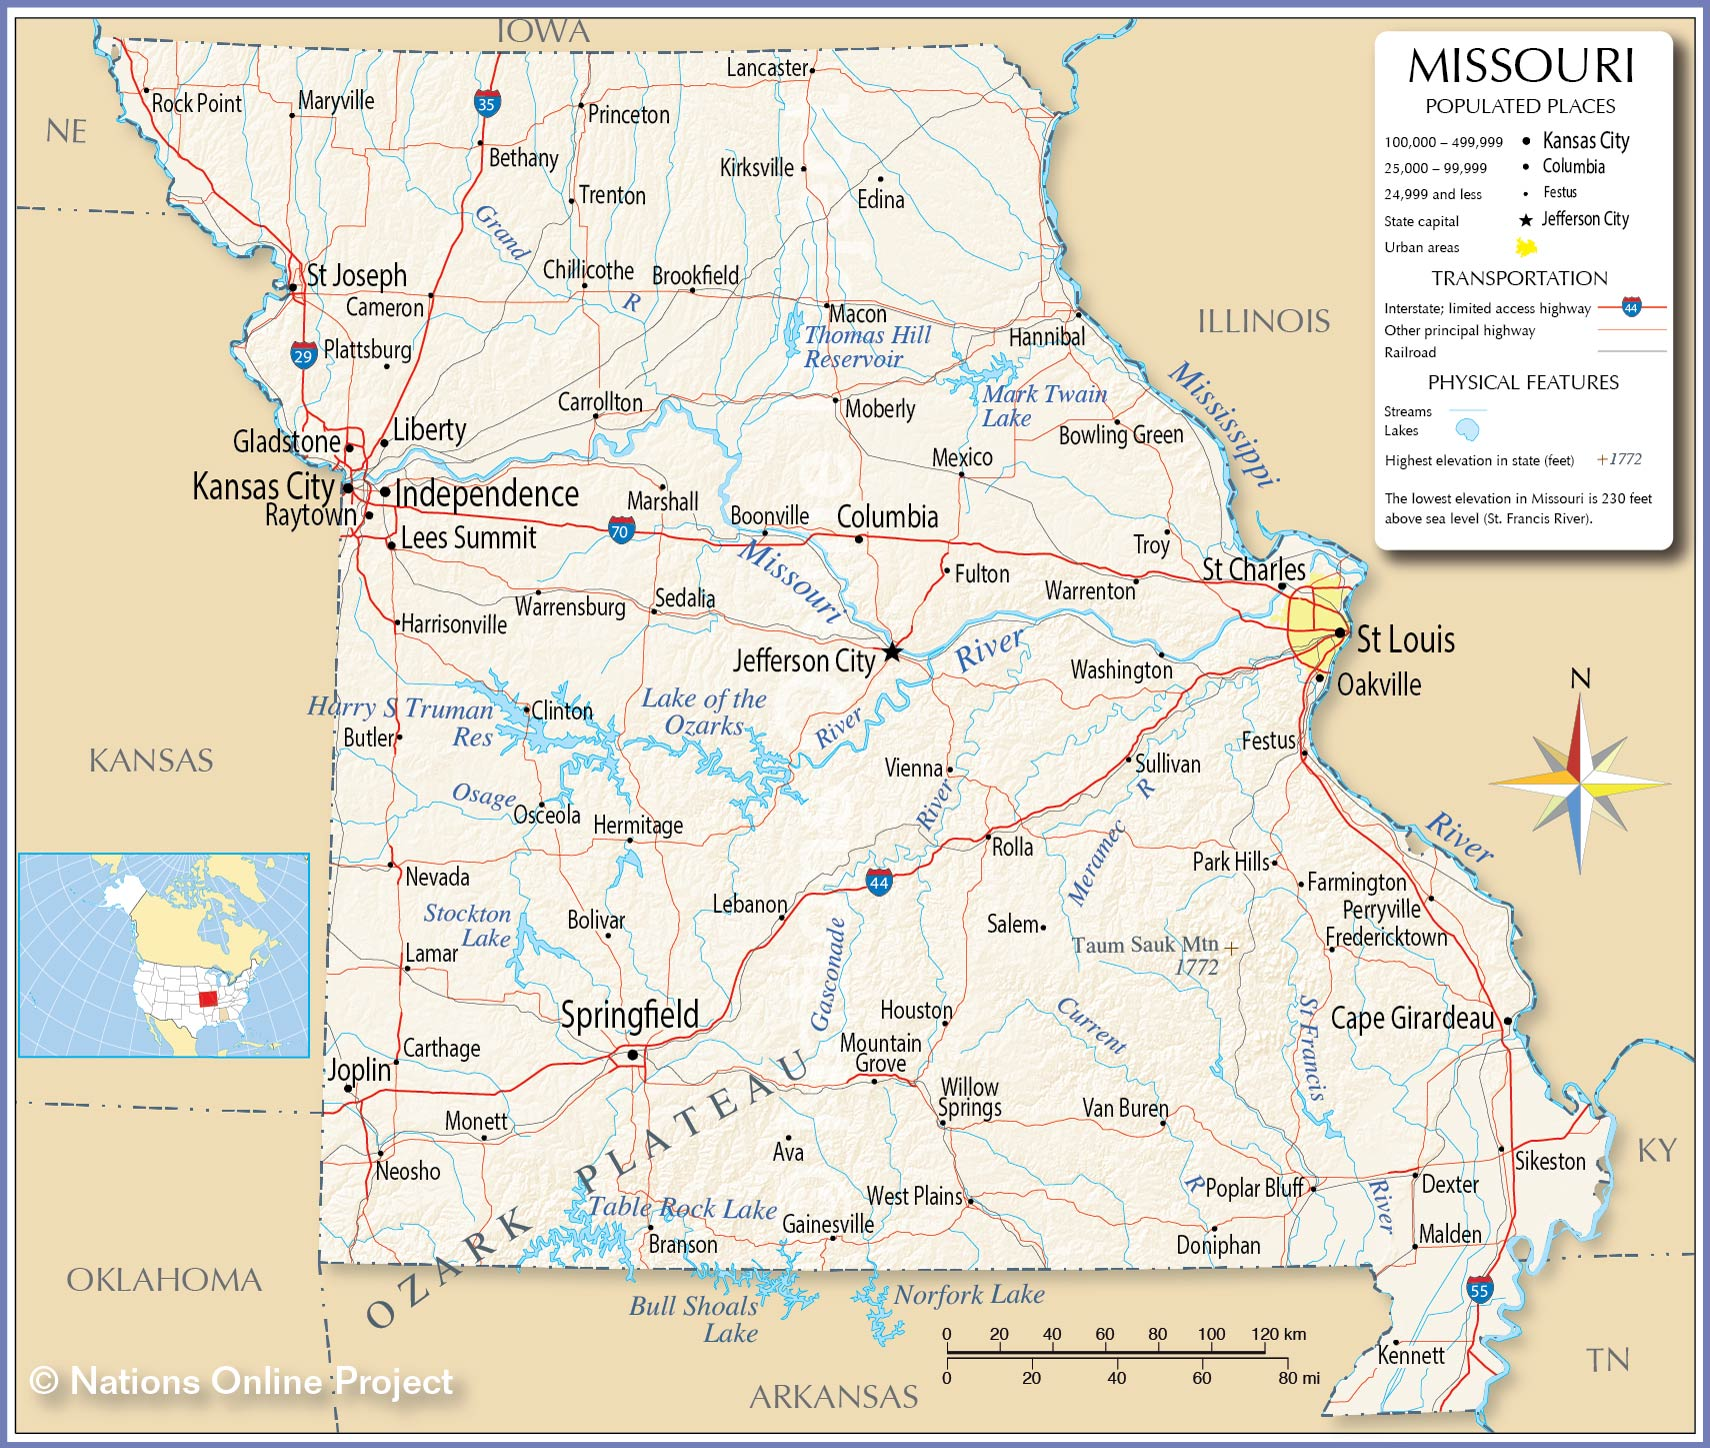 Reference Map Of Missouri USA Nations Online Project - Missourimap